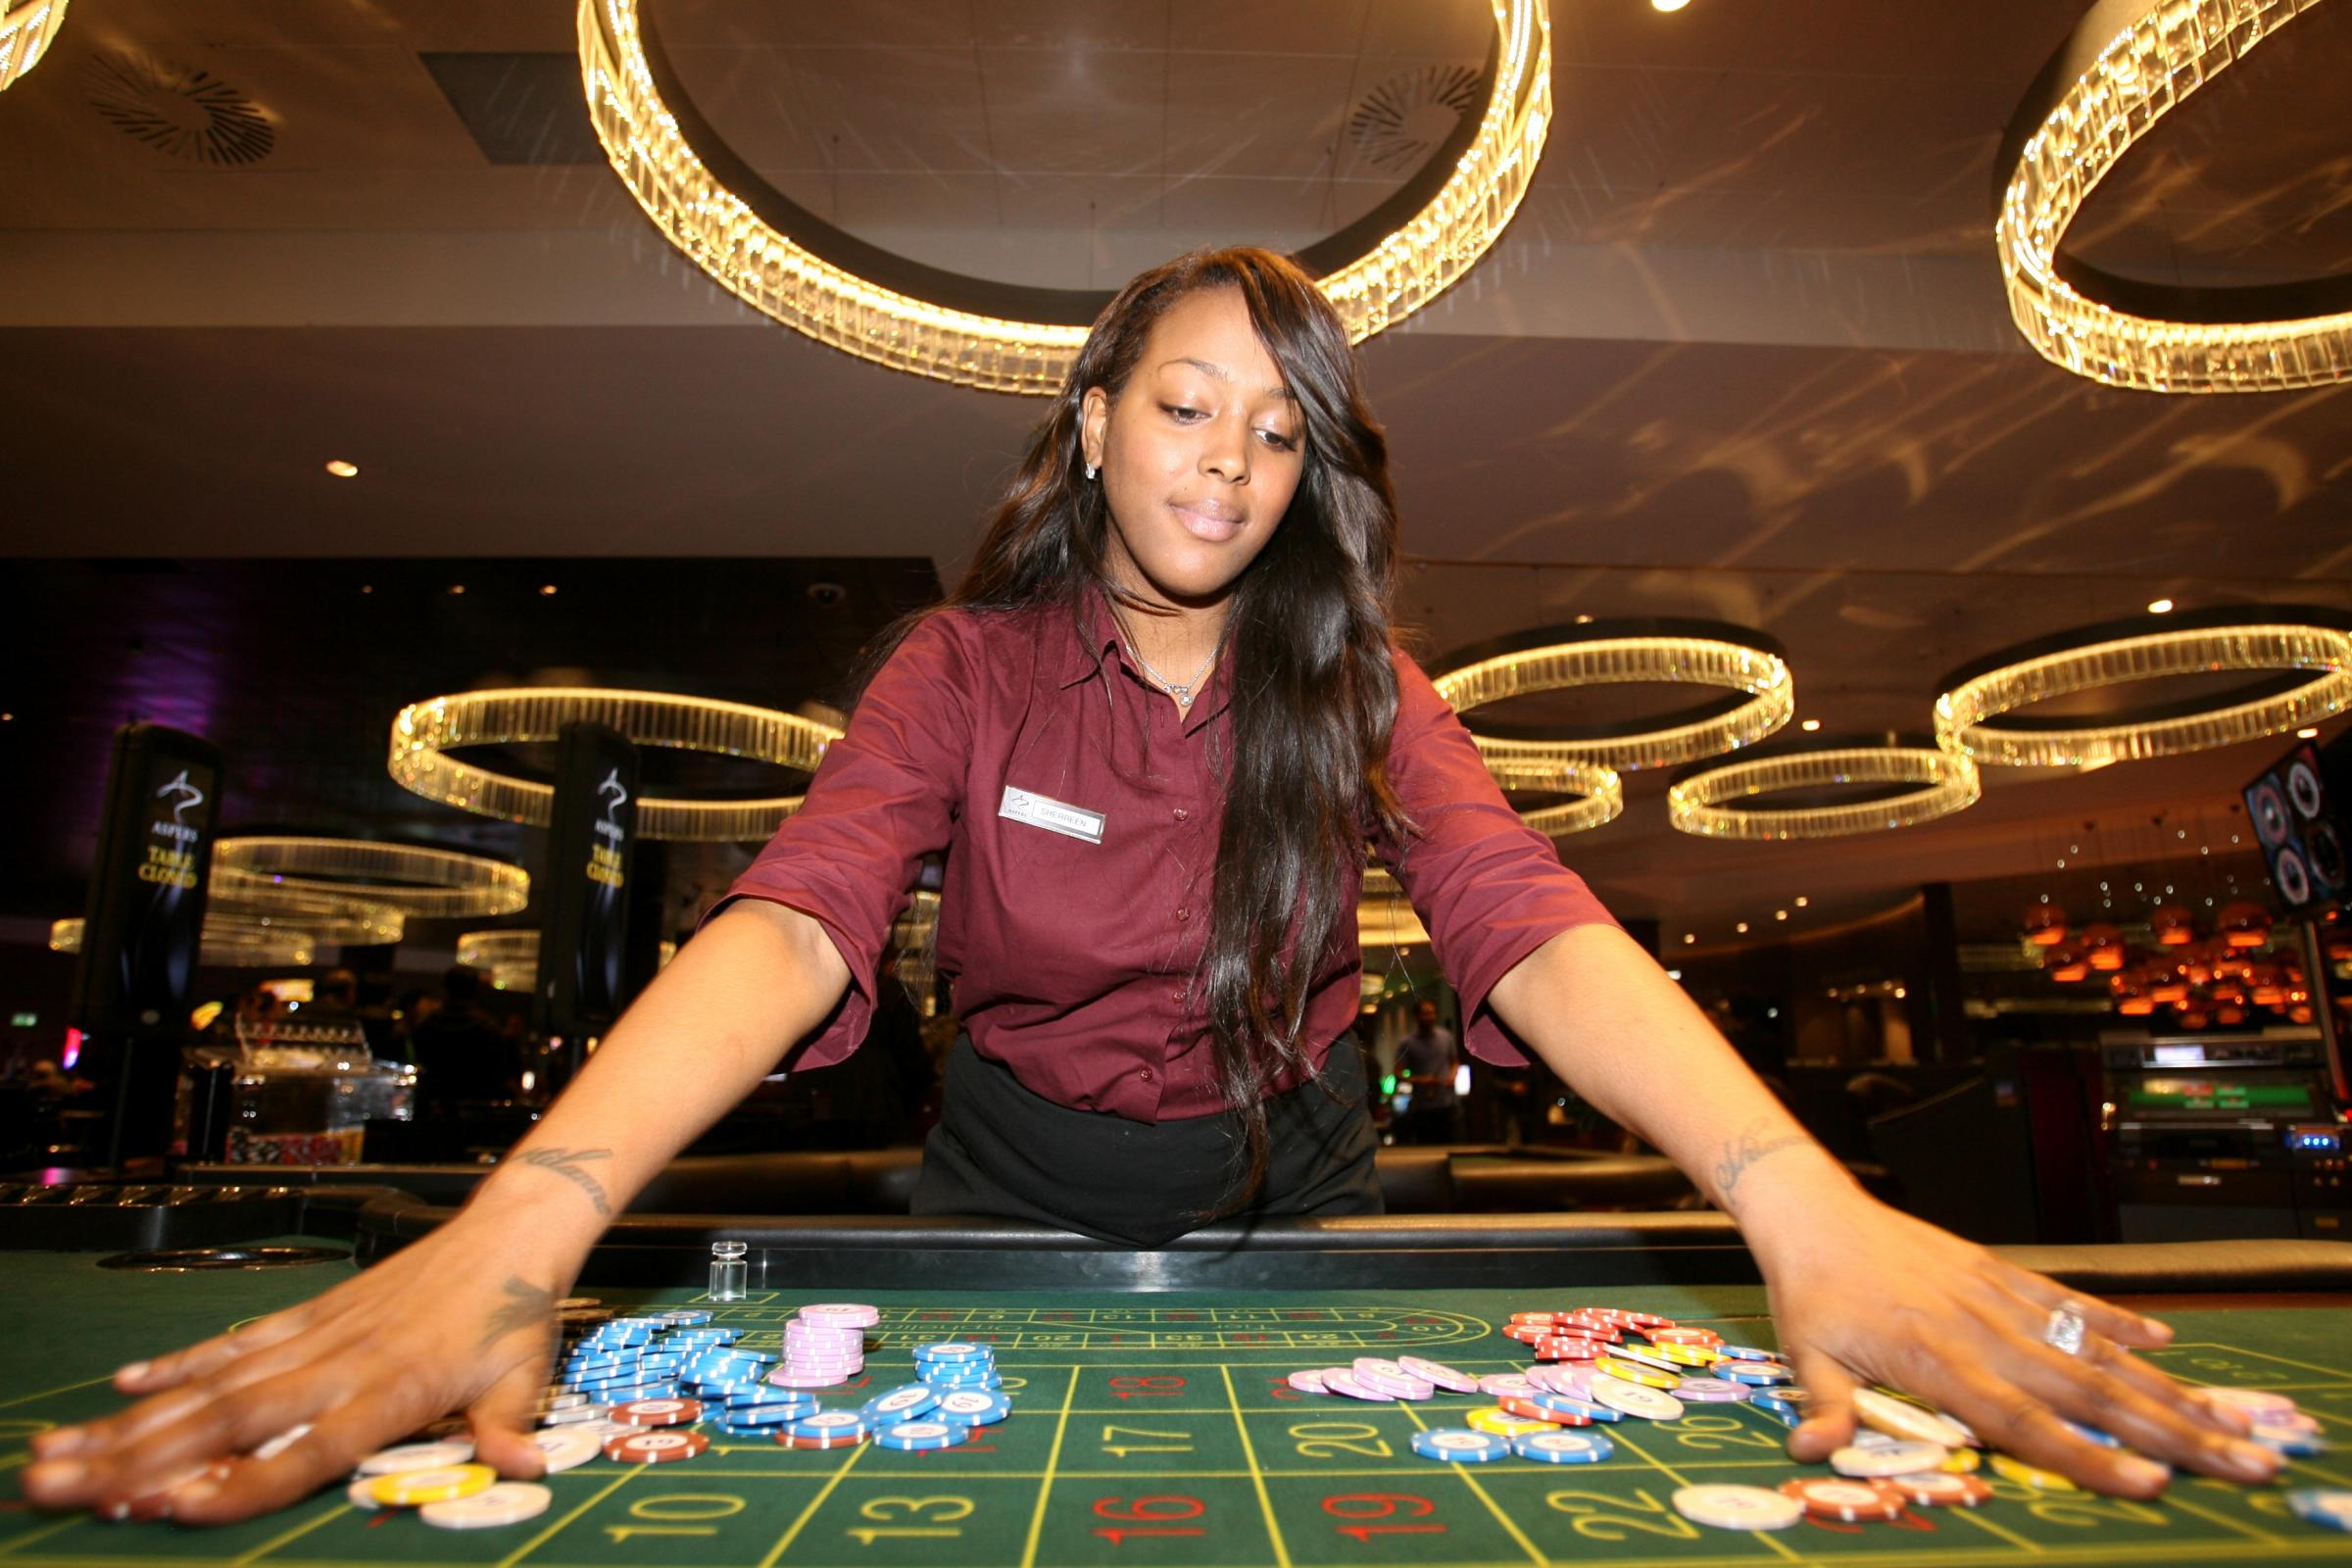 Dealer Sherreen at one of the tables in Aspers Casino in London